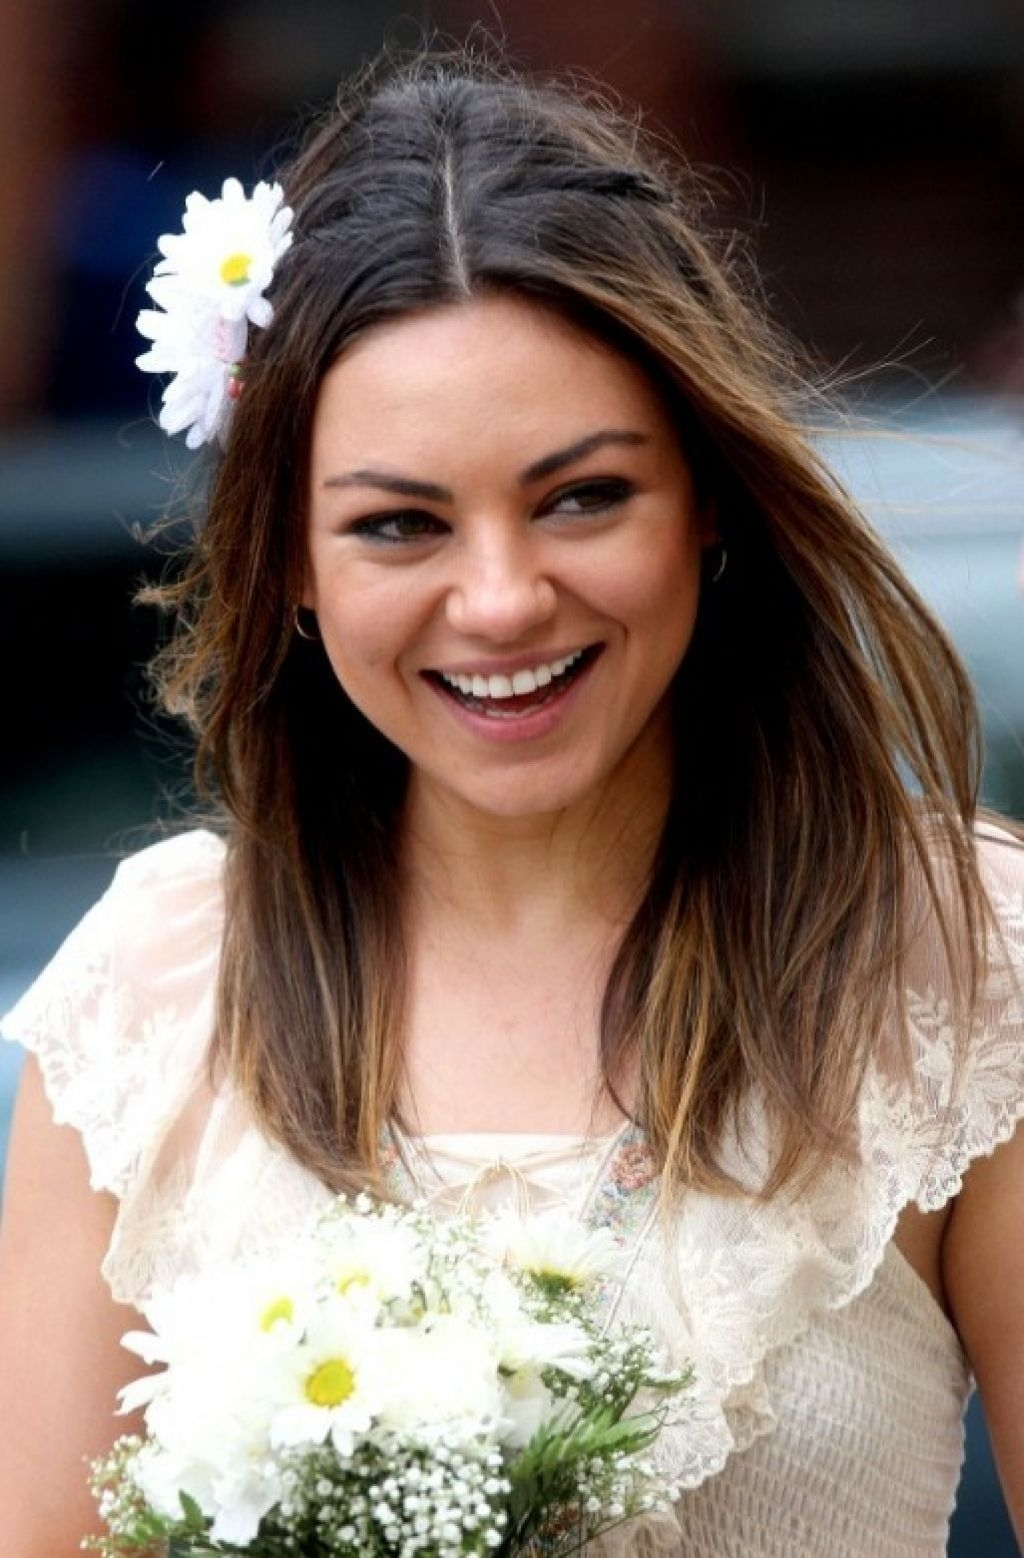 Wedding Hairstyles Ideas: Simple Straight All Down Medium Hair For Current Wedding Hairstyles For Long Hair Down With Flowers (View 11 of 15)